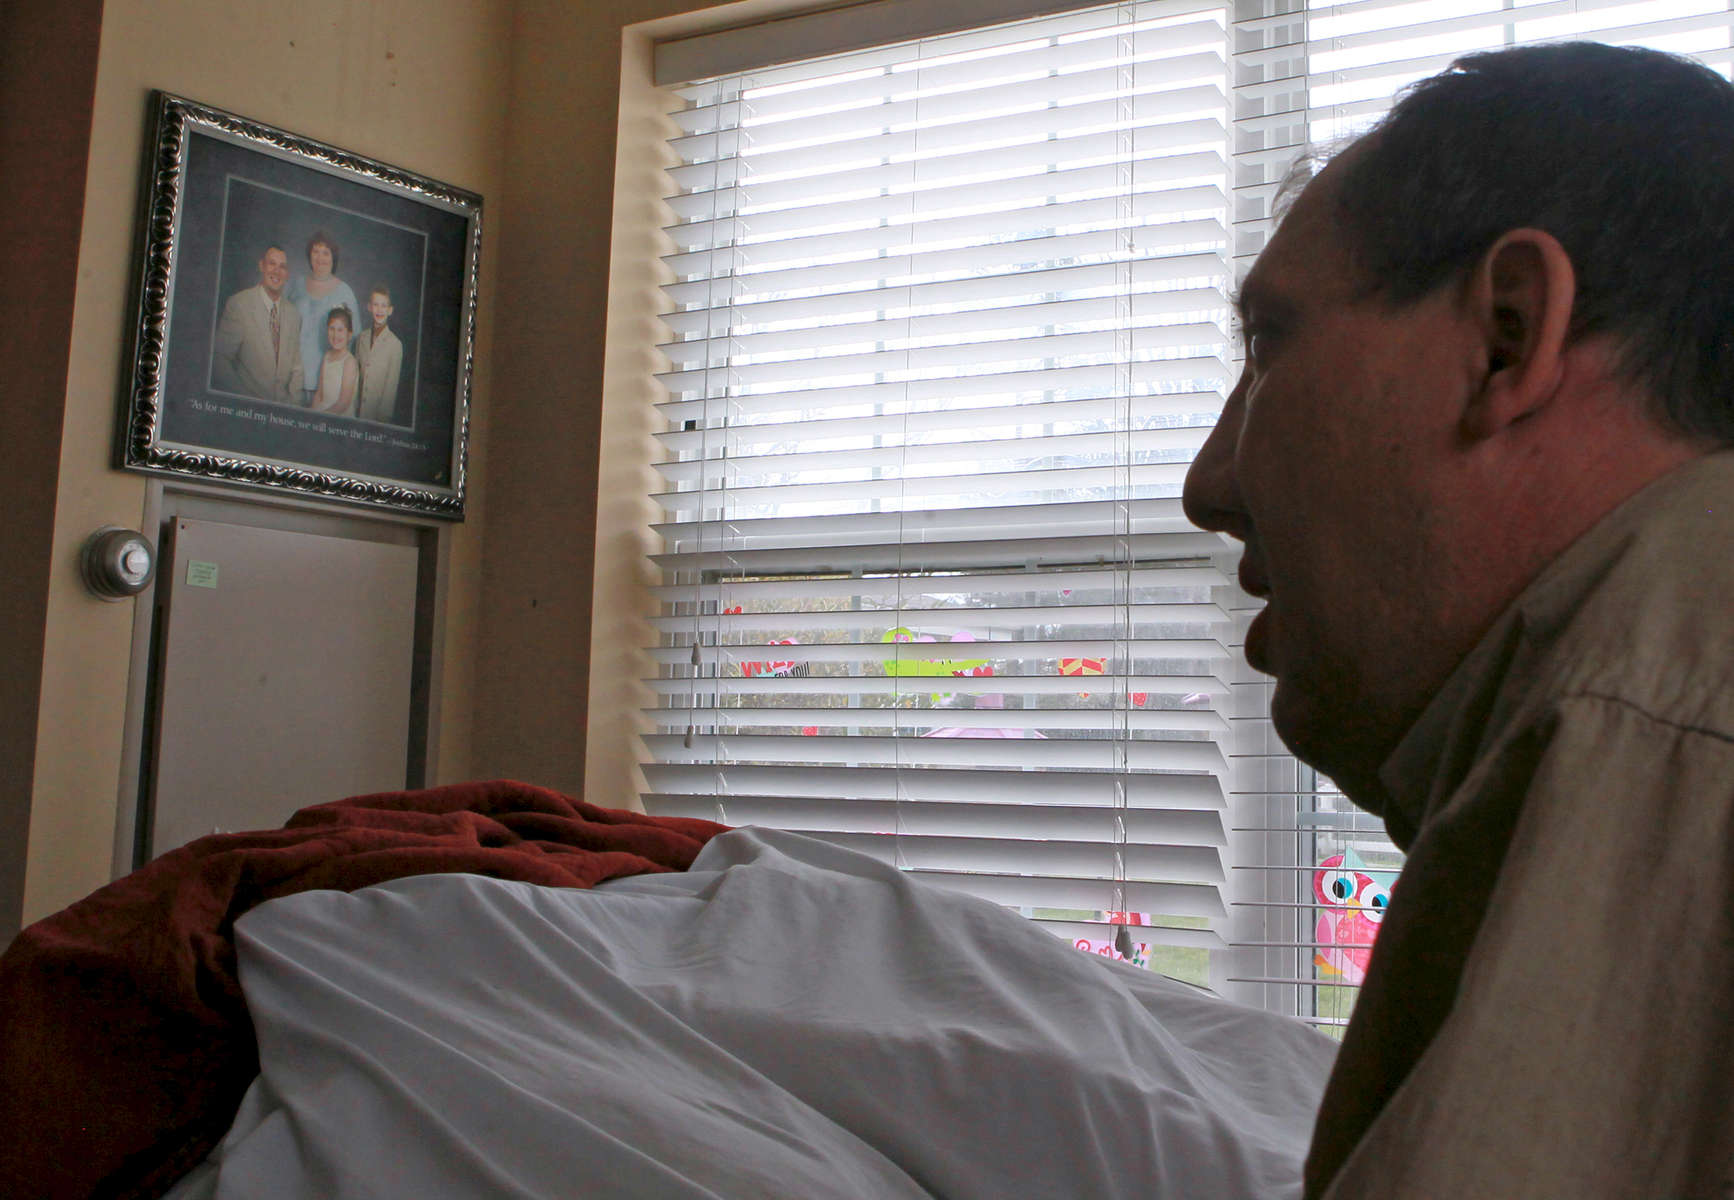 First Place | Multiple PhotosKen Ruinard, Anderson Independent MailRev. Gregg Loner of Honea Path looks at a family portrait with his wife Dee Loner and children hanging in her room at Brookdale Senior Living Solutions in Greenville.